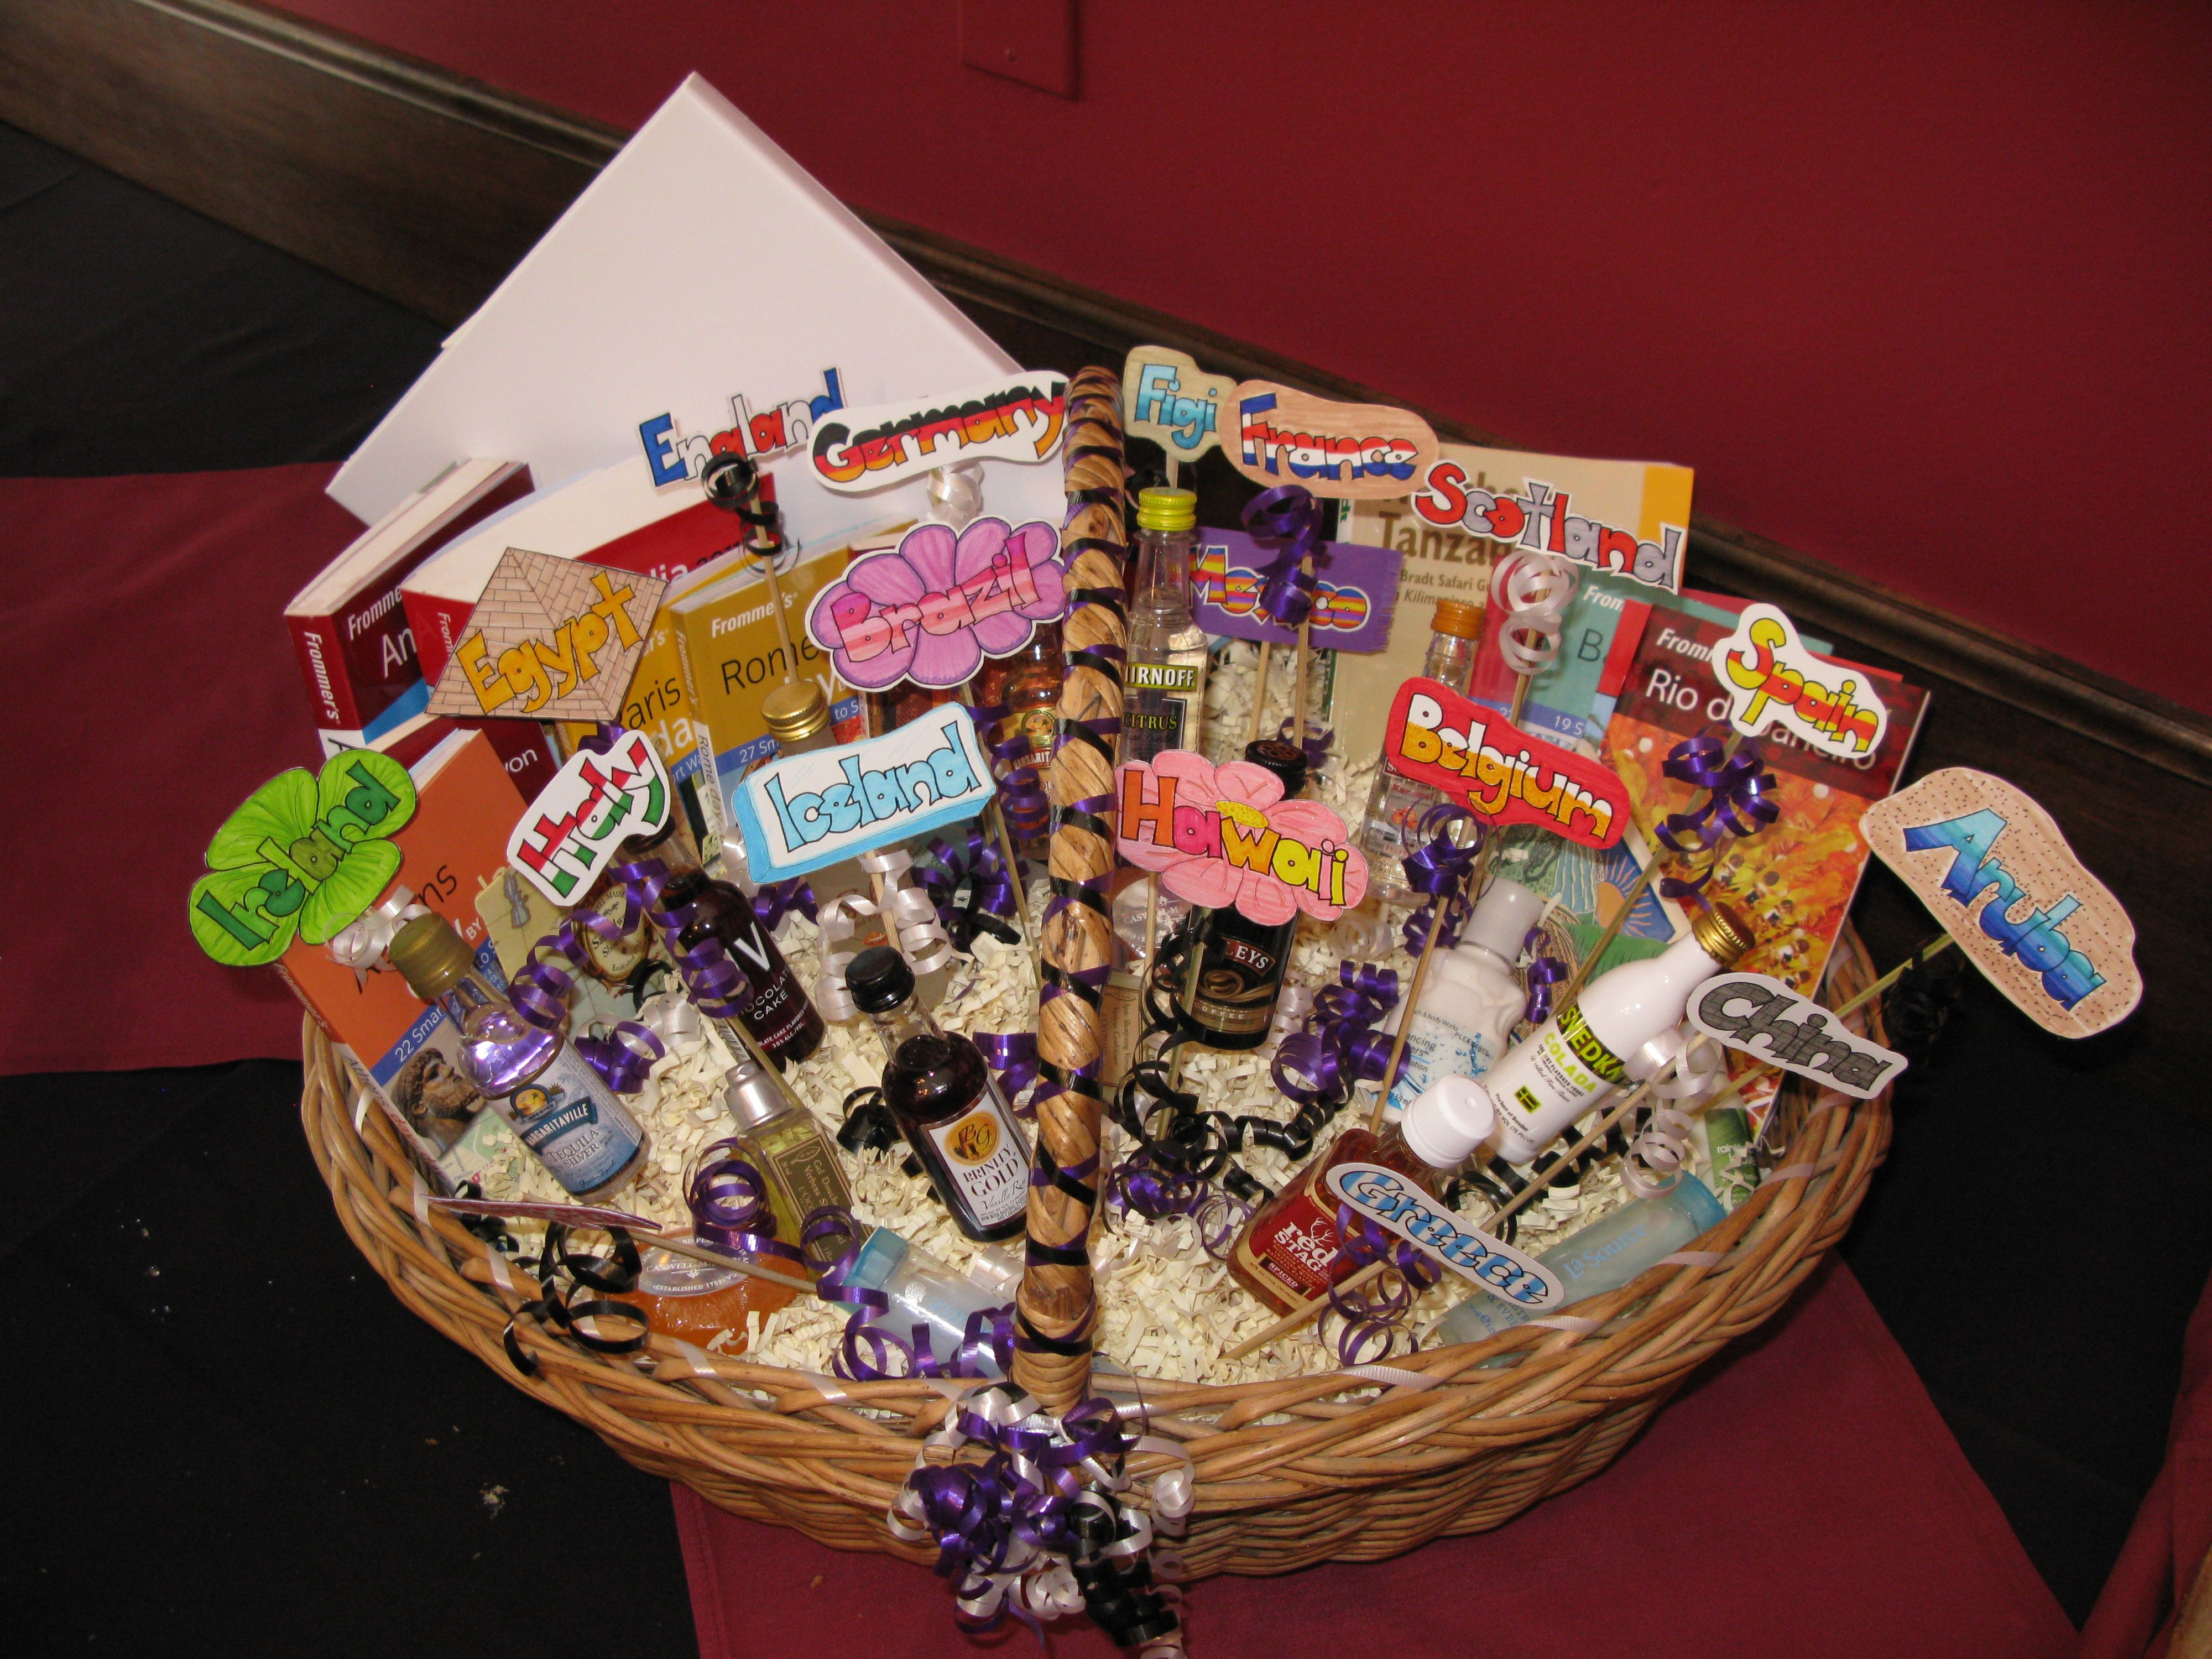 Wedding shower gift for my niece. Travel basket with